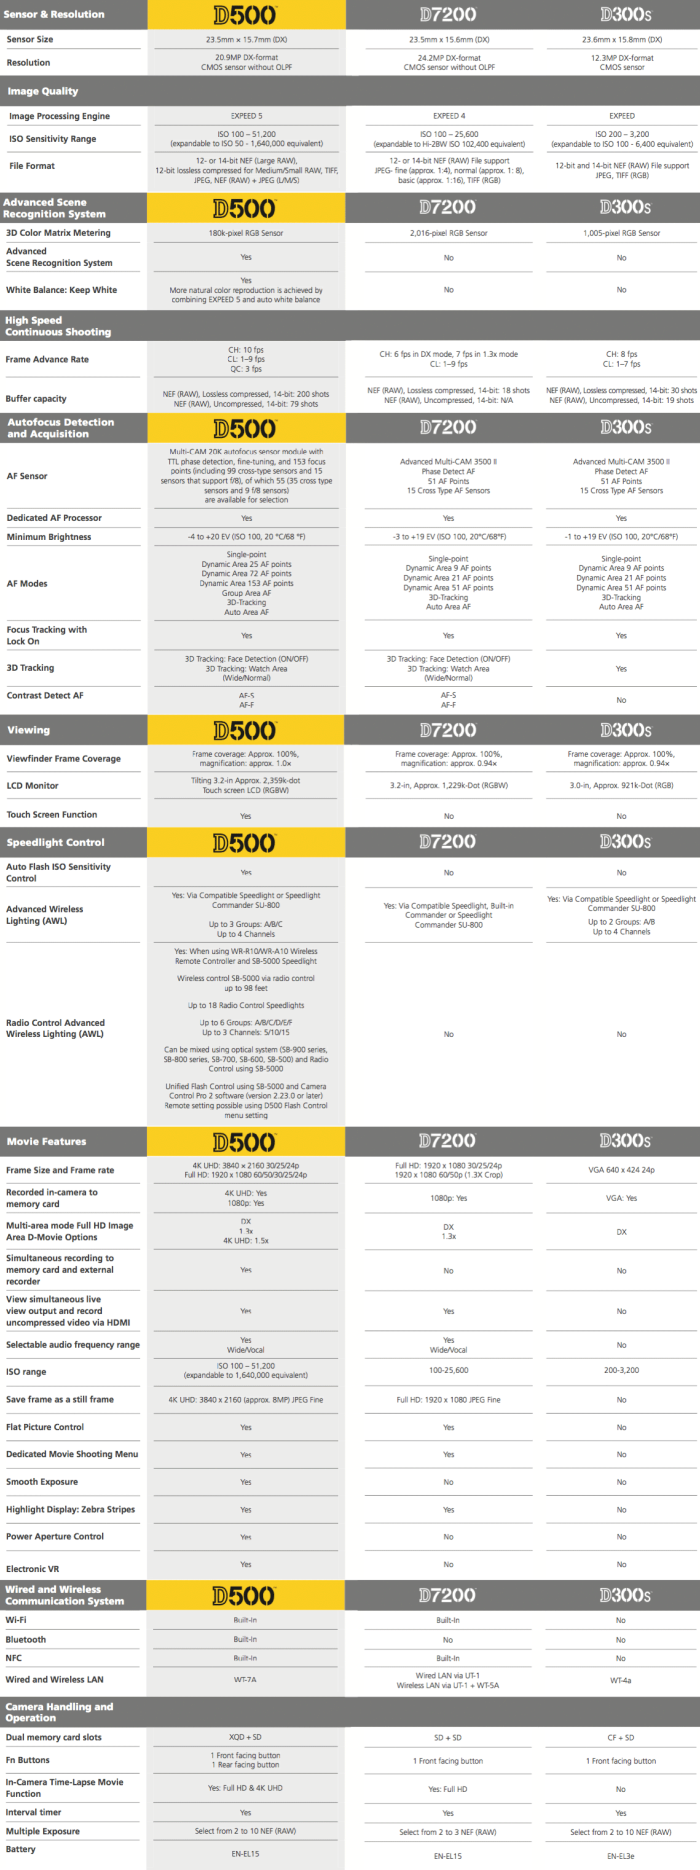 Nikon-D500-vs.-D7200-vs.-D300s-specifications-comparison